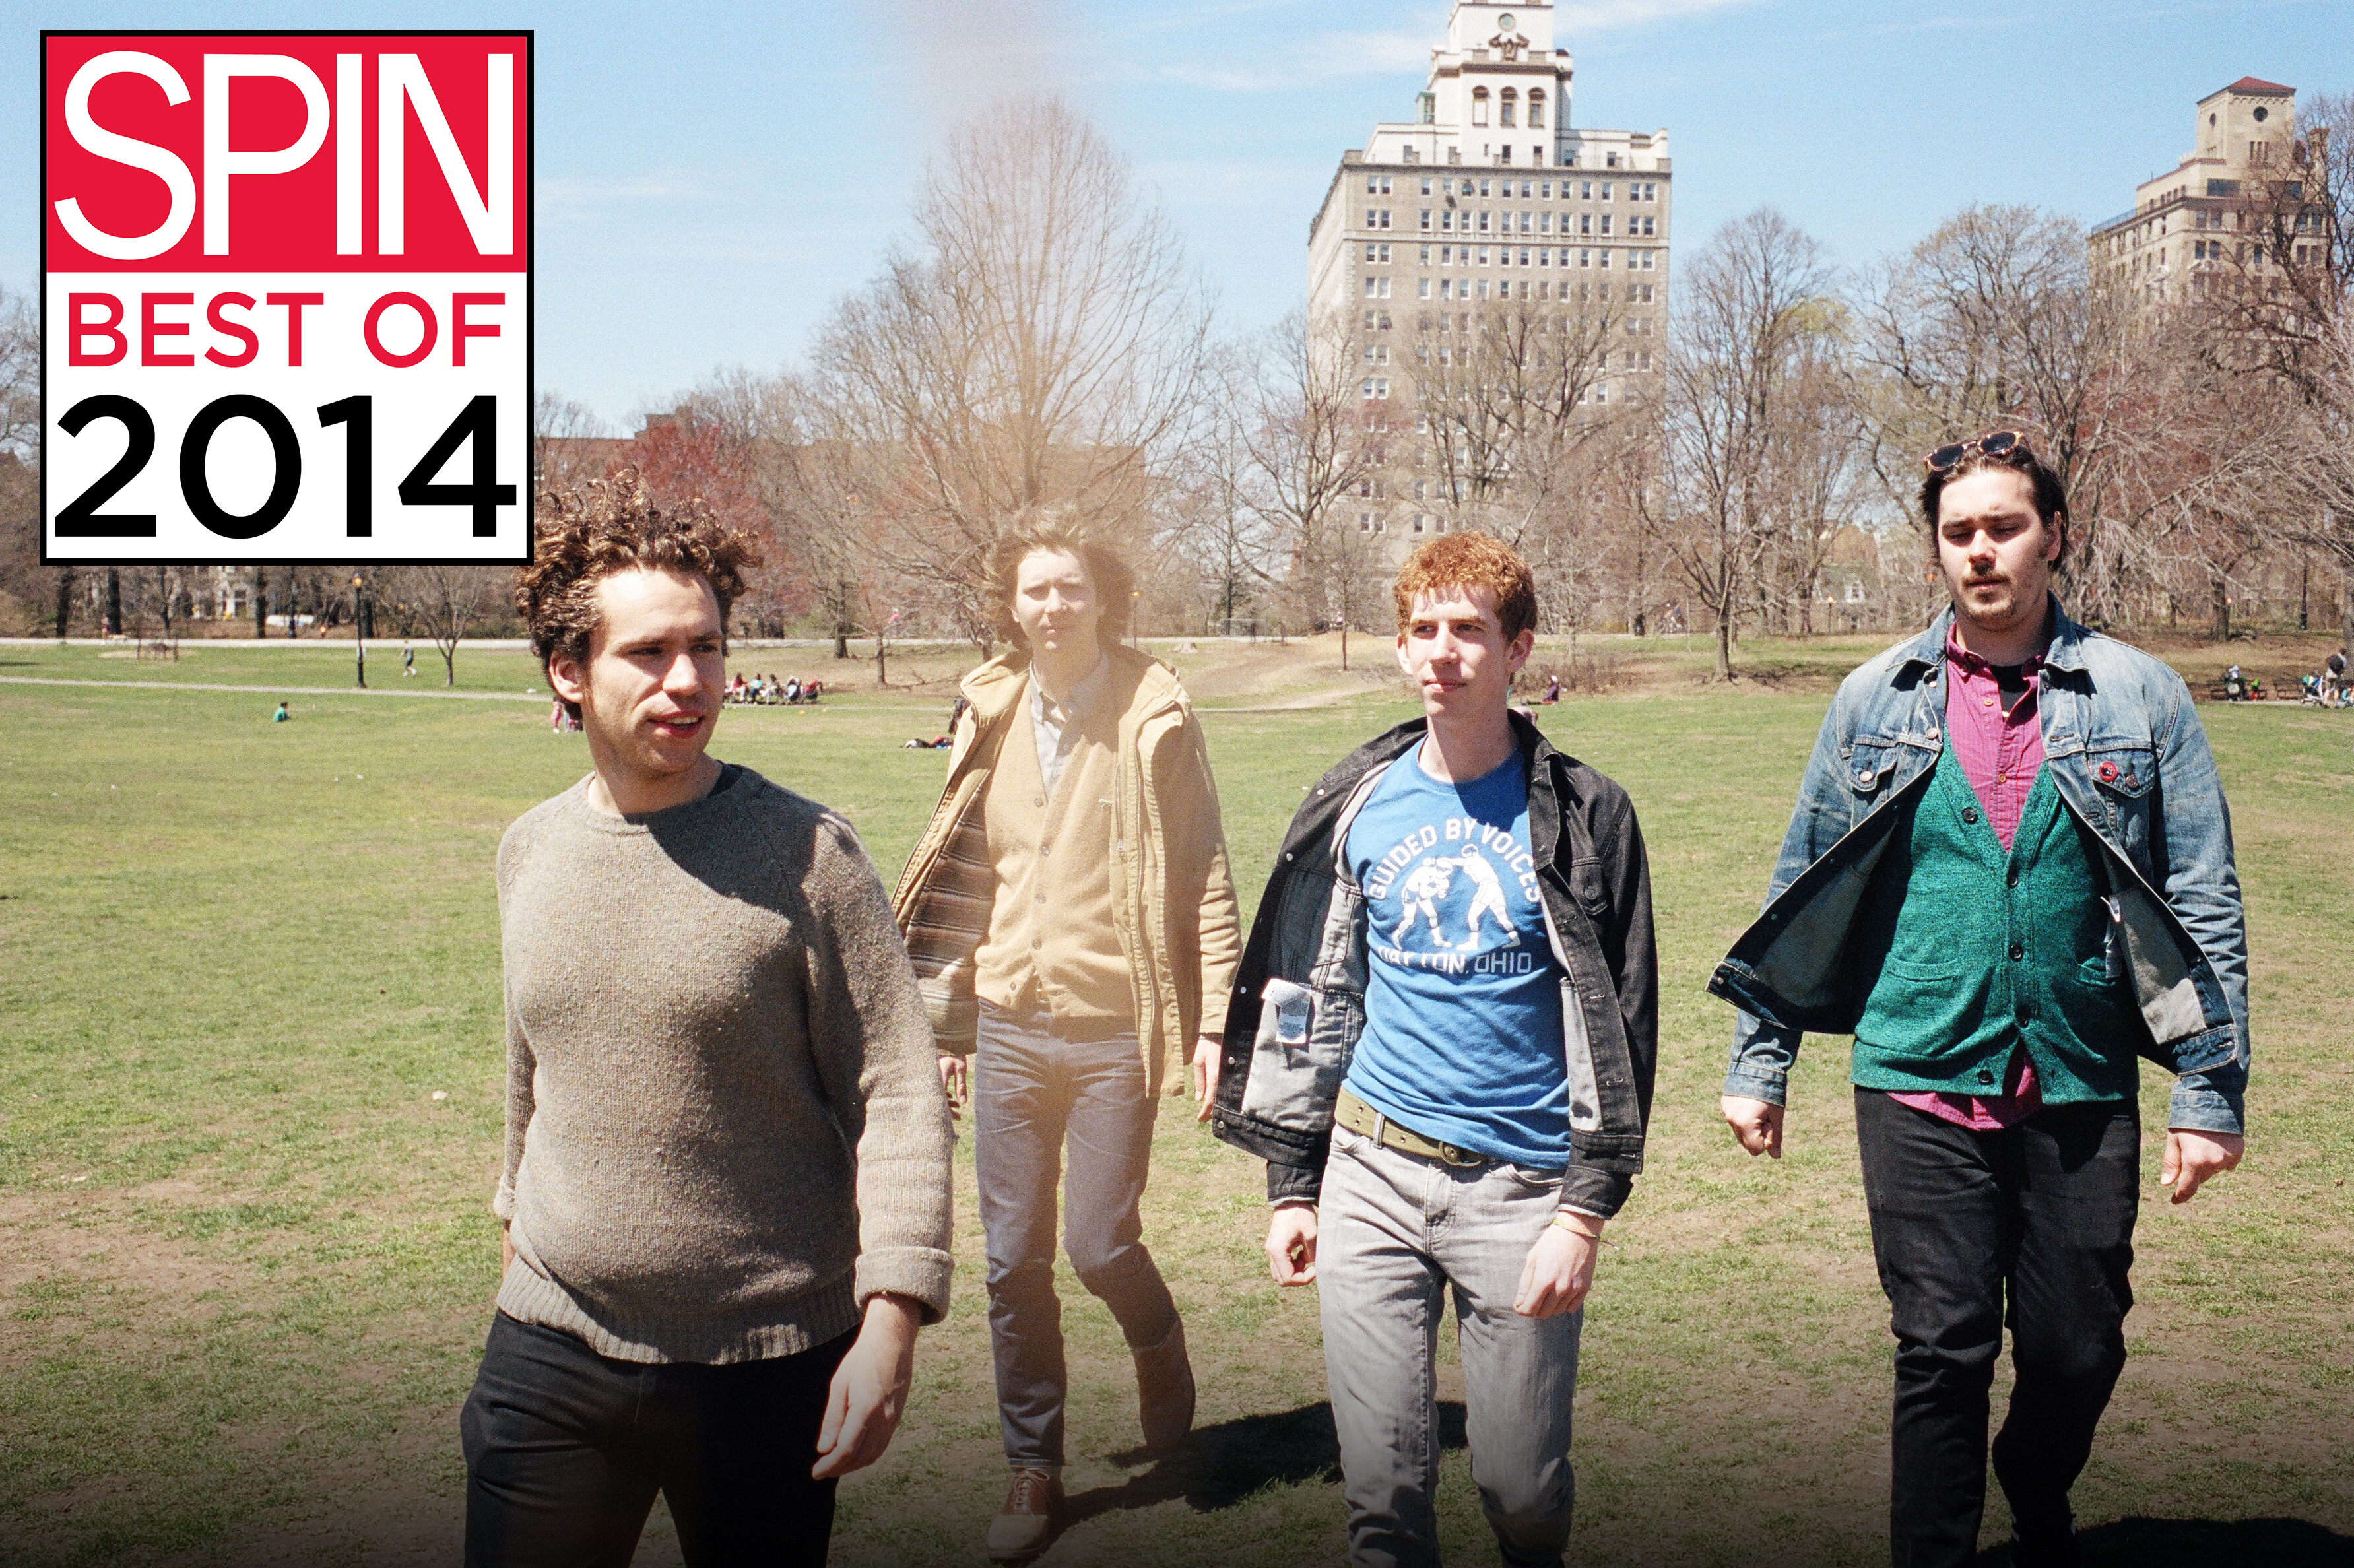 Parquet Courts Are SPIN's 2014 Band of the Year